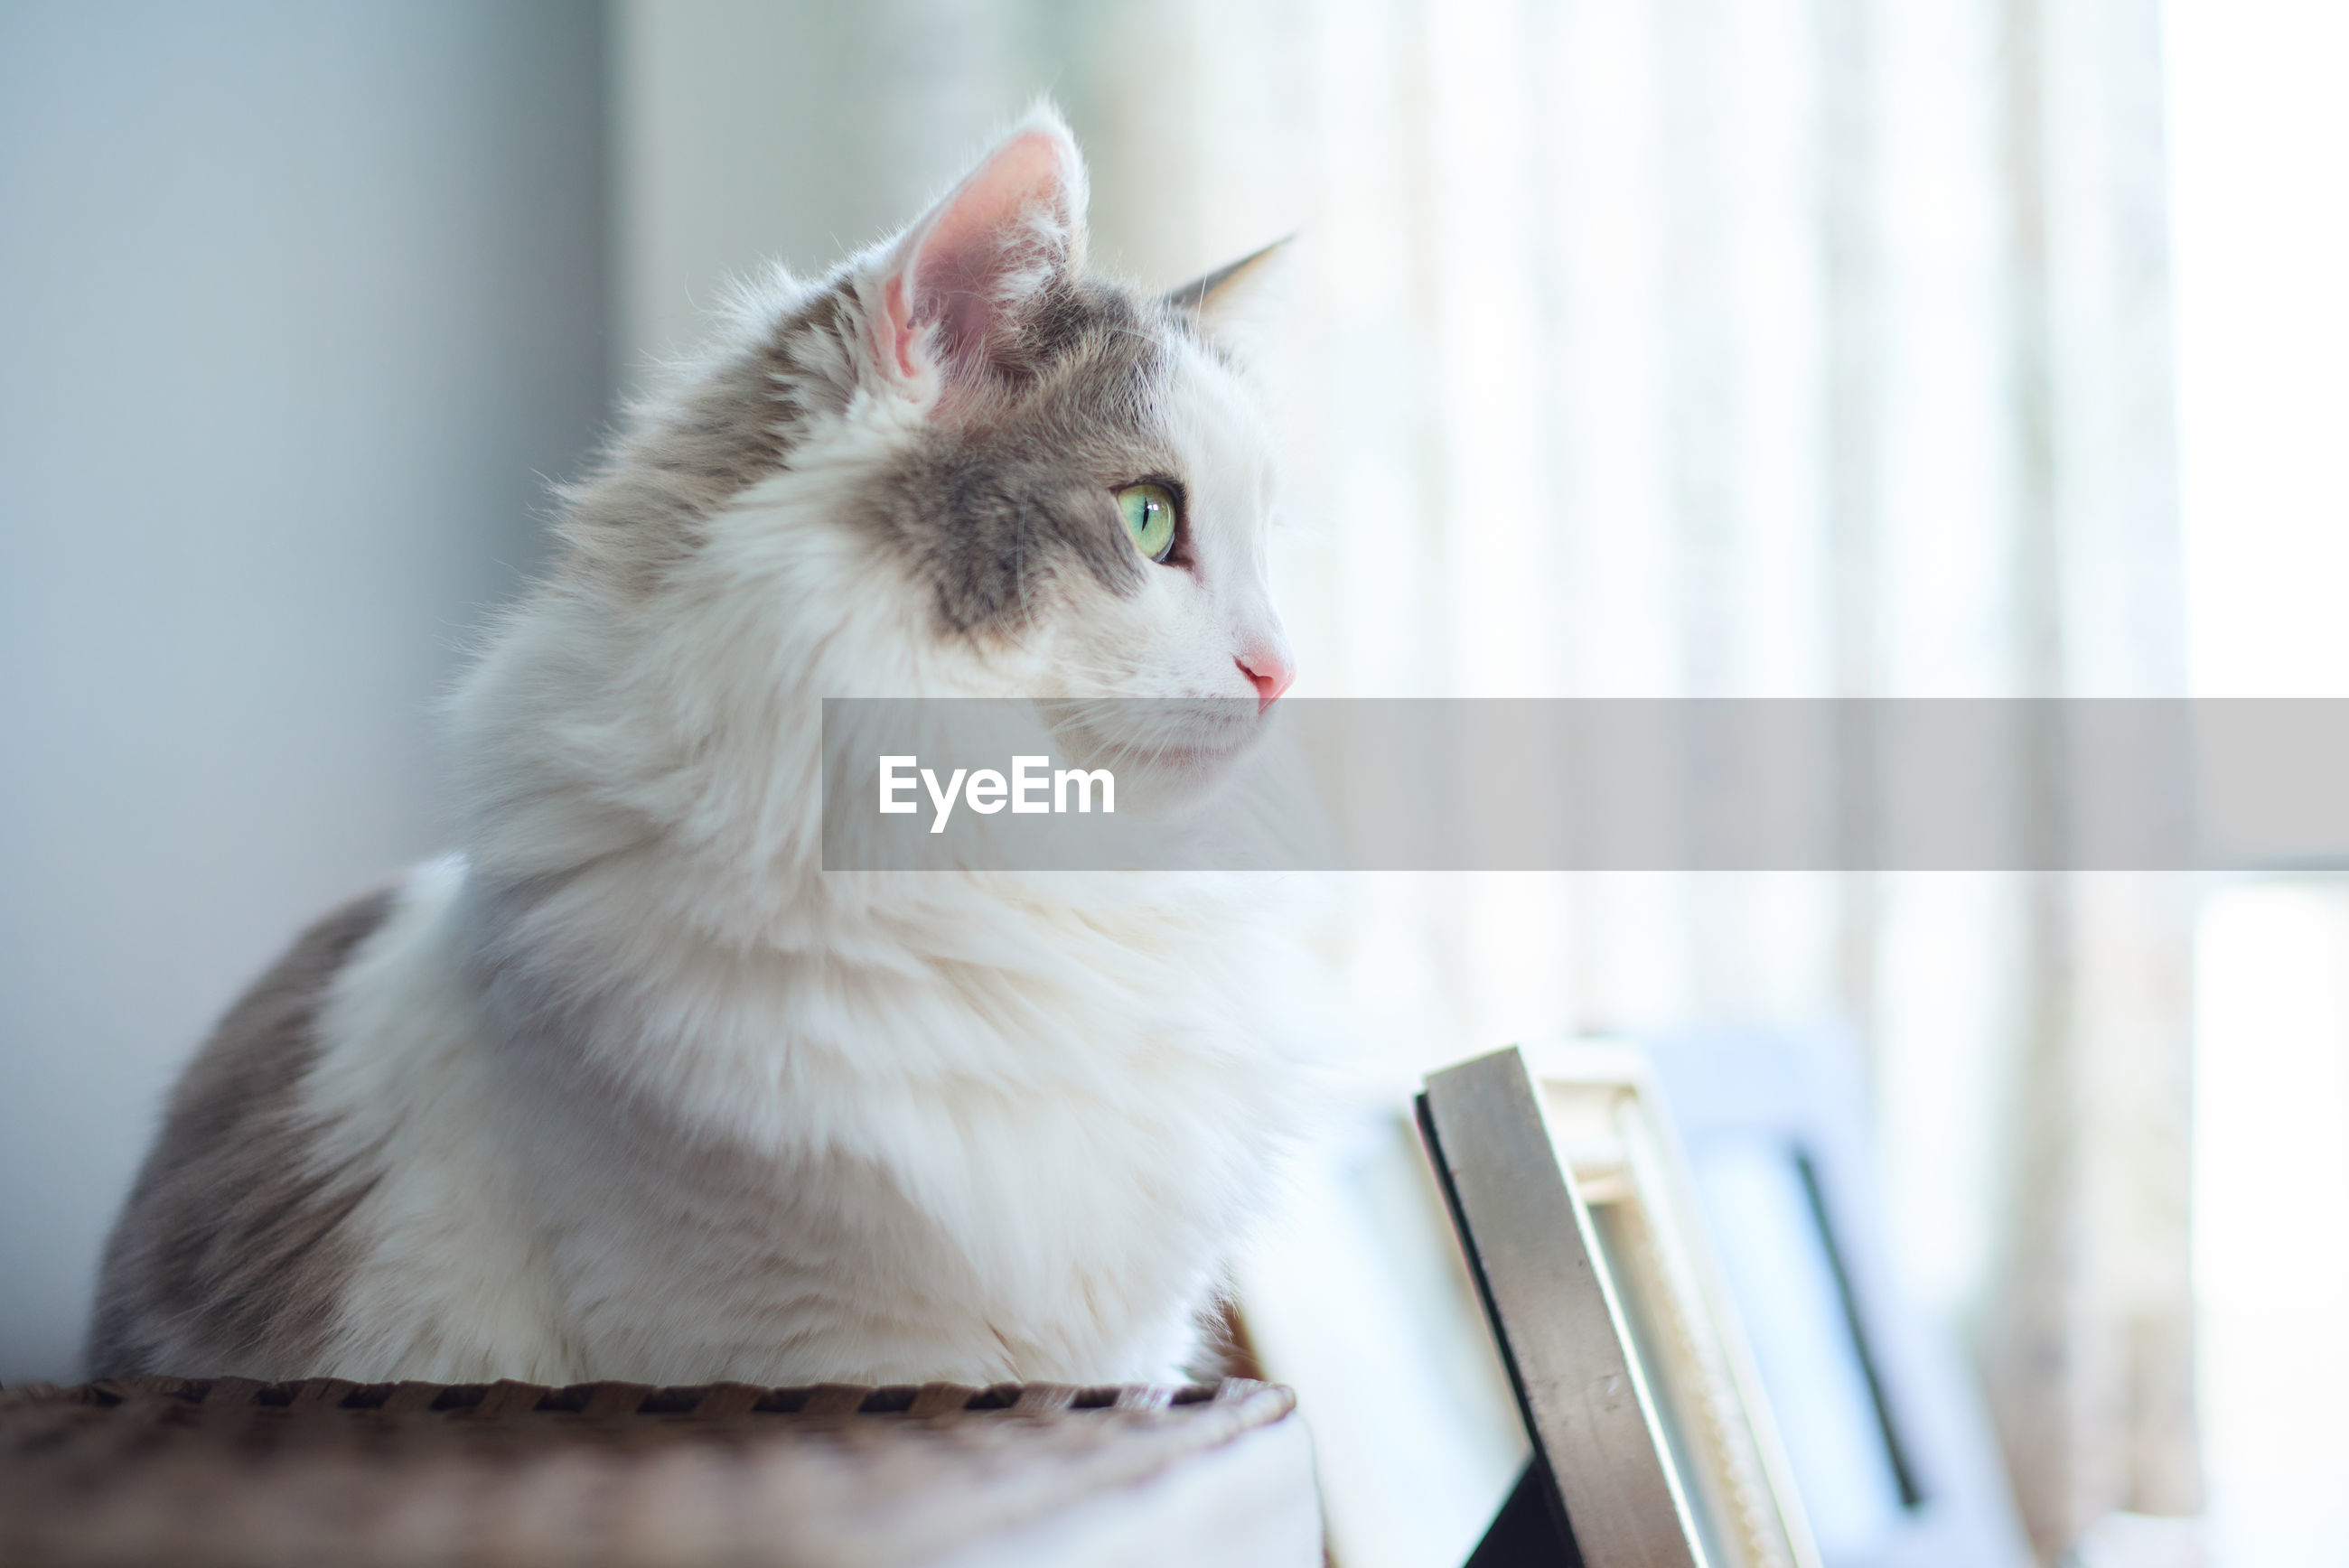 Close-up of a cat sitting on desk